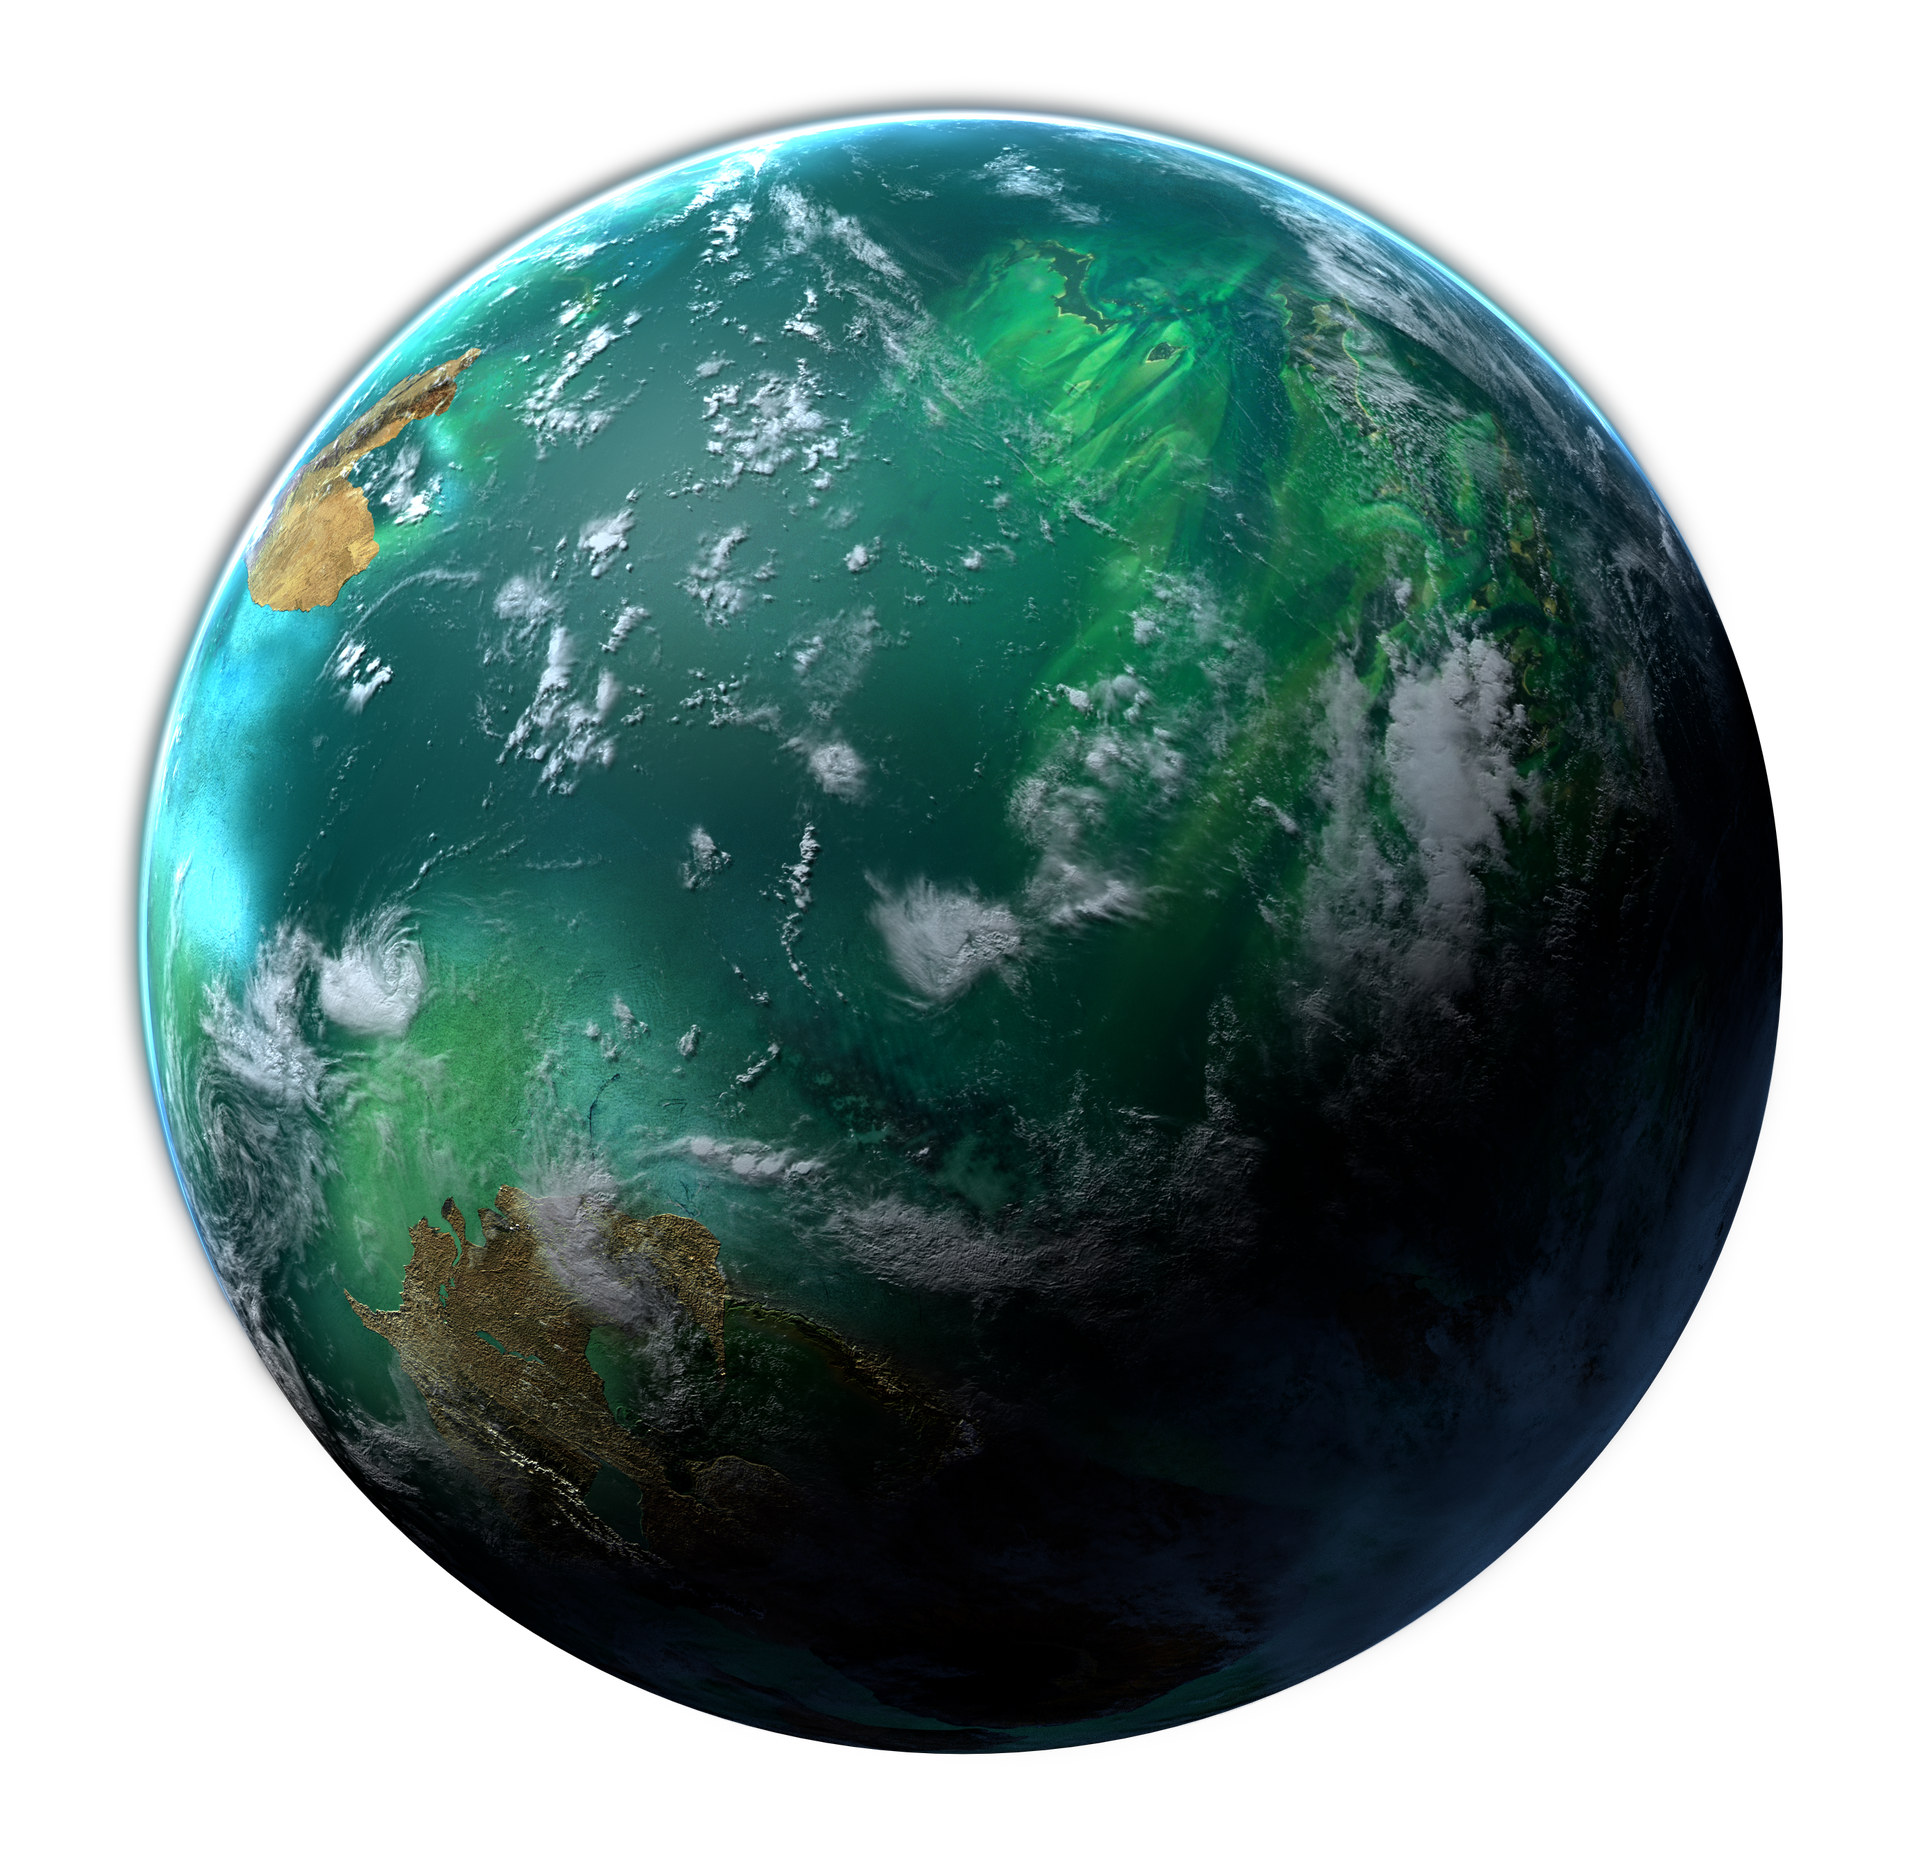 tropic_planet_stock_by_dadrian_dd0hnbh-fullview.png